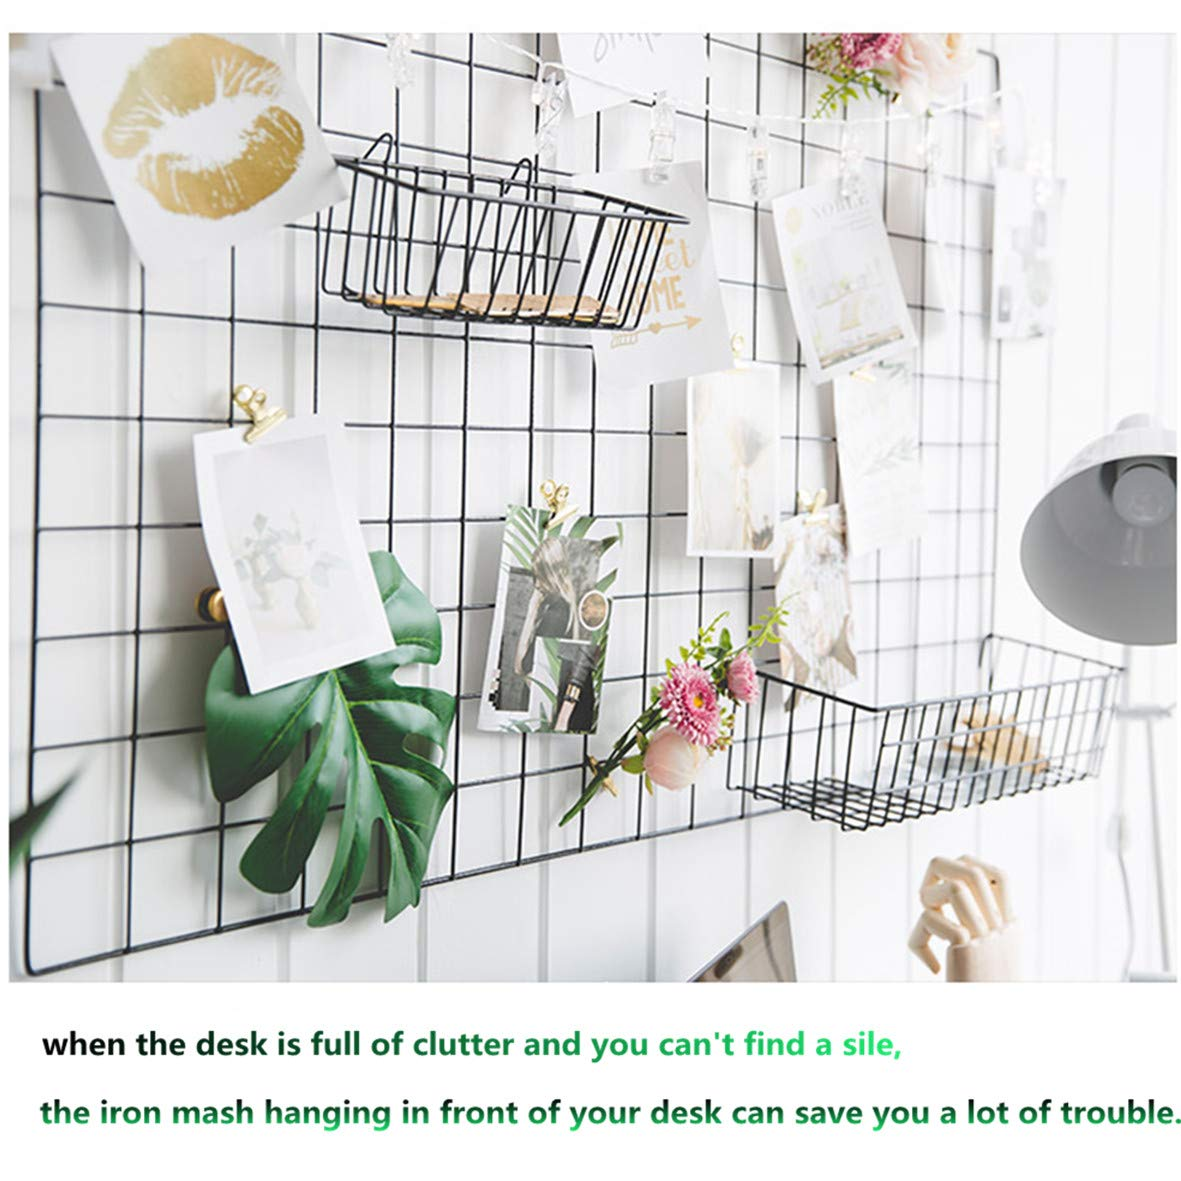 GBYAN Grid Wall Panel Decorative Iron Rack Clip Photo Holder, Painted Wire Photograph Hanging Picture Multifunctional Hanging Display Wall Storage Organizer,25.6'' x17.7'' (2 Pack) (Black Rectangle) by GBYAN (Image #3)